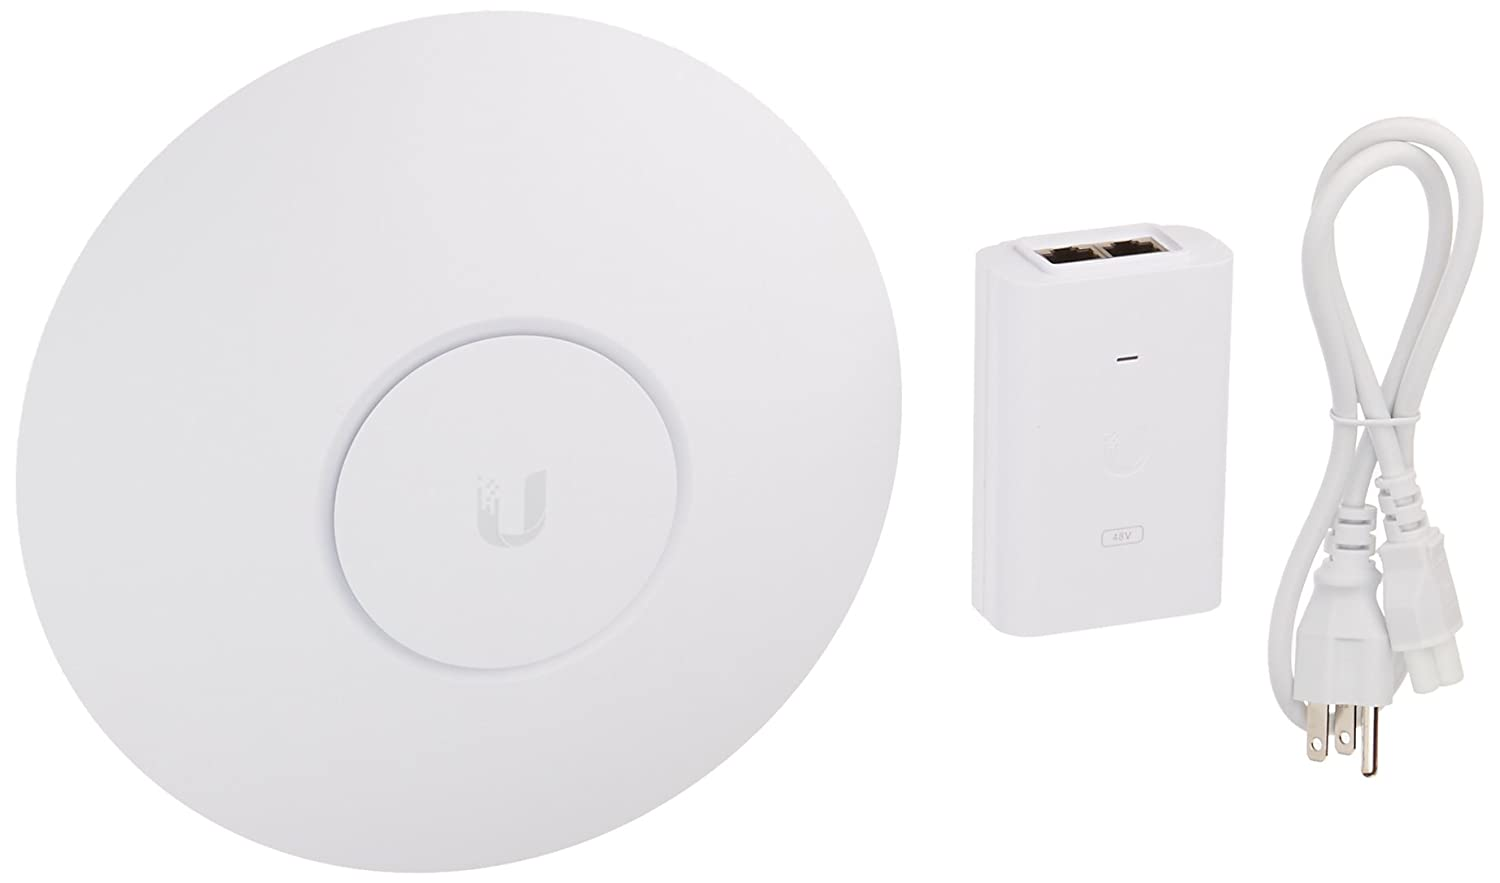 Ubiquiti UniFi HD 802.11ac Wave 2 Enterprise Wi-Fi Access Point (UAP-AC-HD-US)